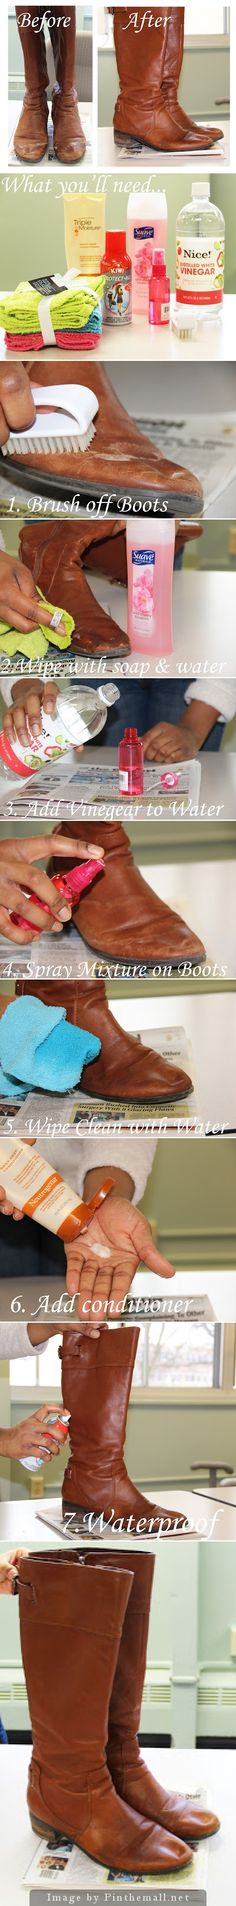 How to Remove Salt Stains from Leather Boots_  Needs: A Shoe Brush, Body Soap, A Spray Bottle, Vinegar, Hair Conditioner, Towel & Leather Boot Waterproofing Spray - src: http://www.11andchic.com/2013/03/how-to-remove-salt-stains-from-leather.html -  created via http://pinthemall.net